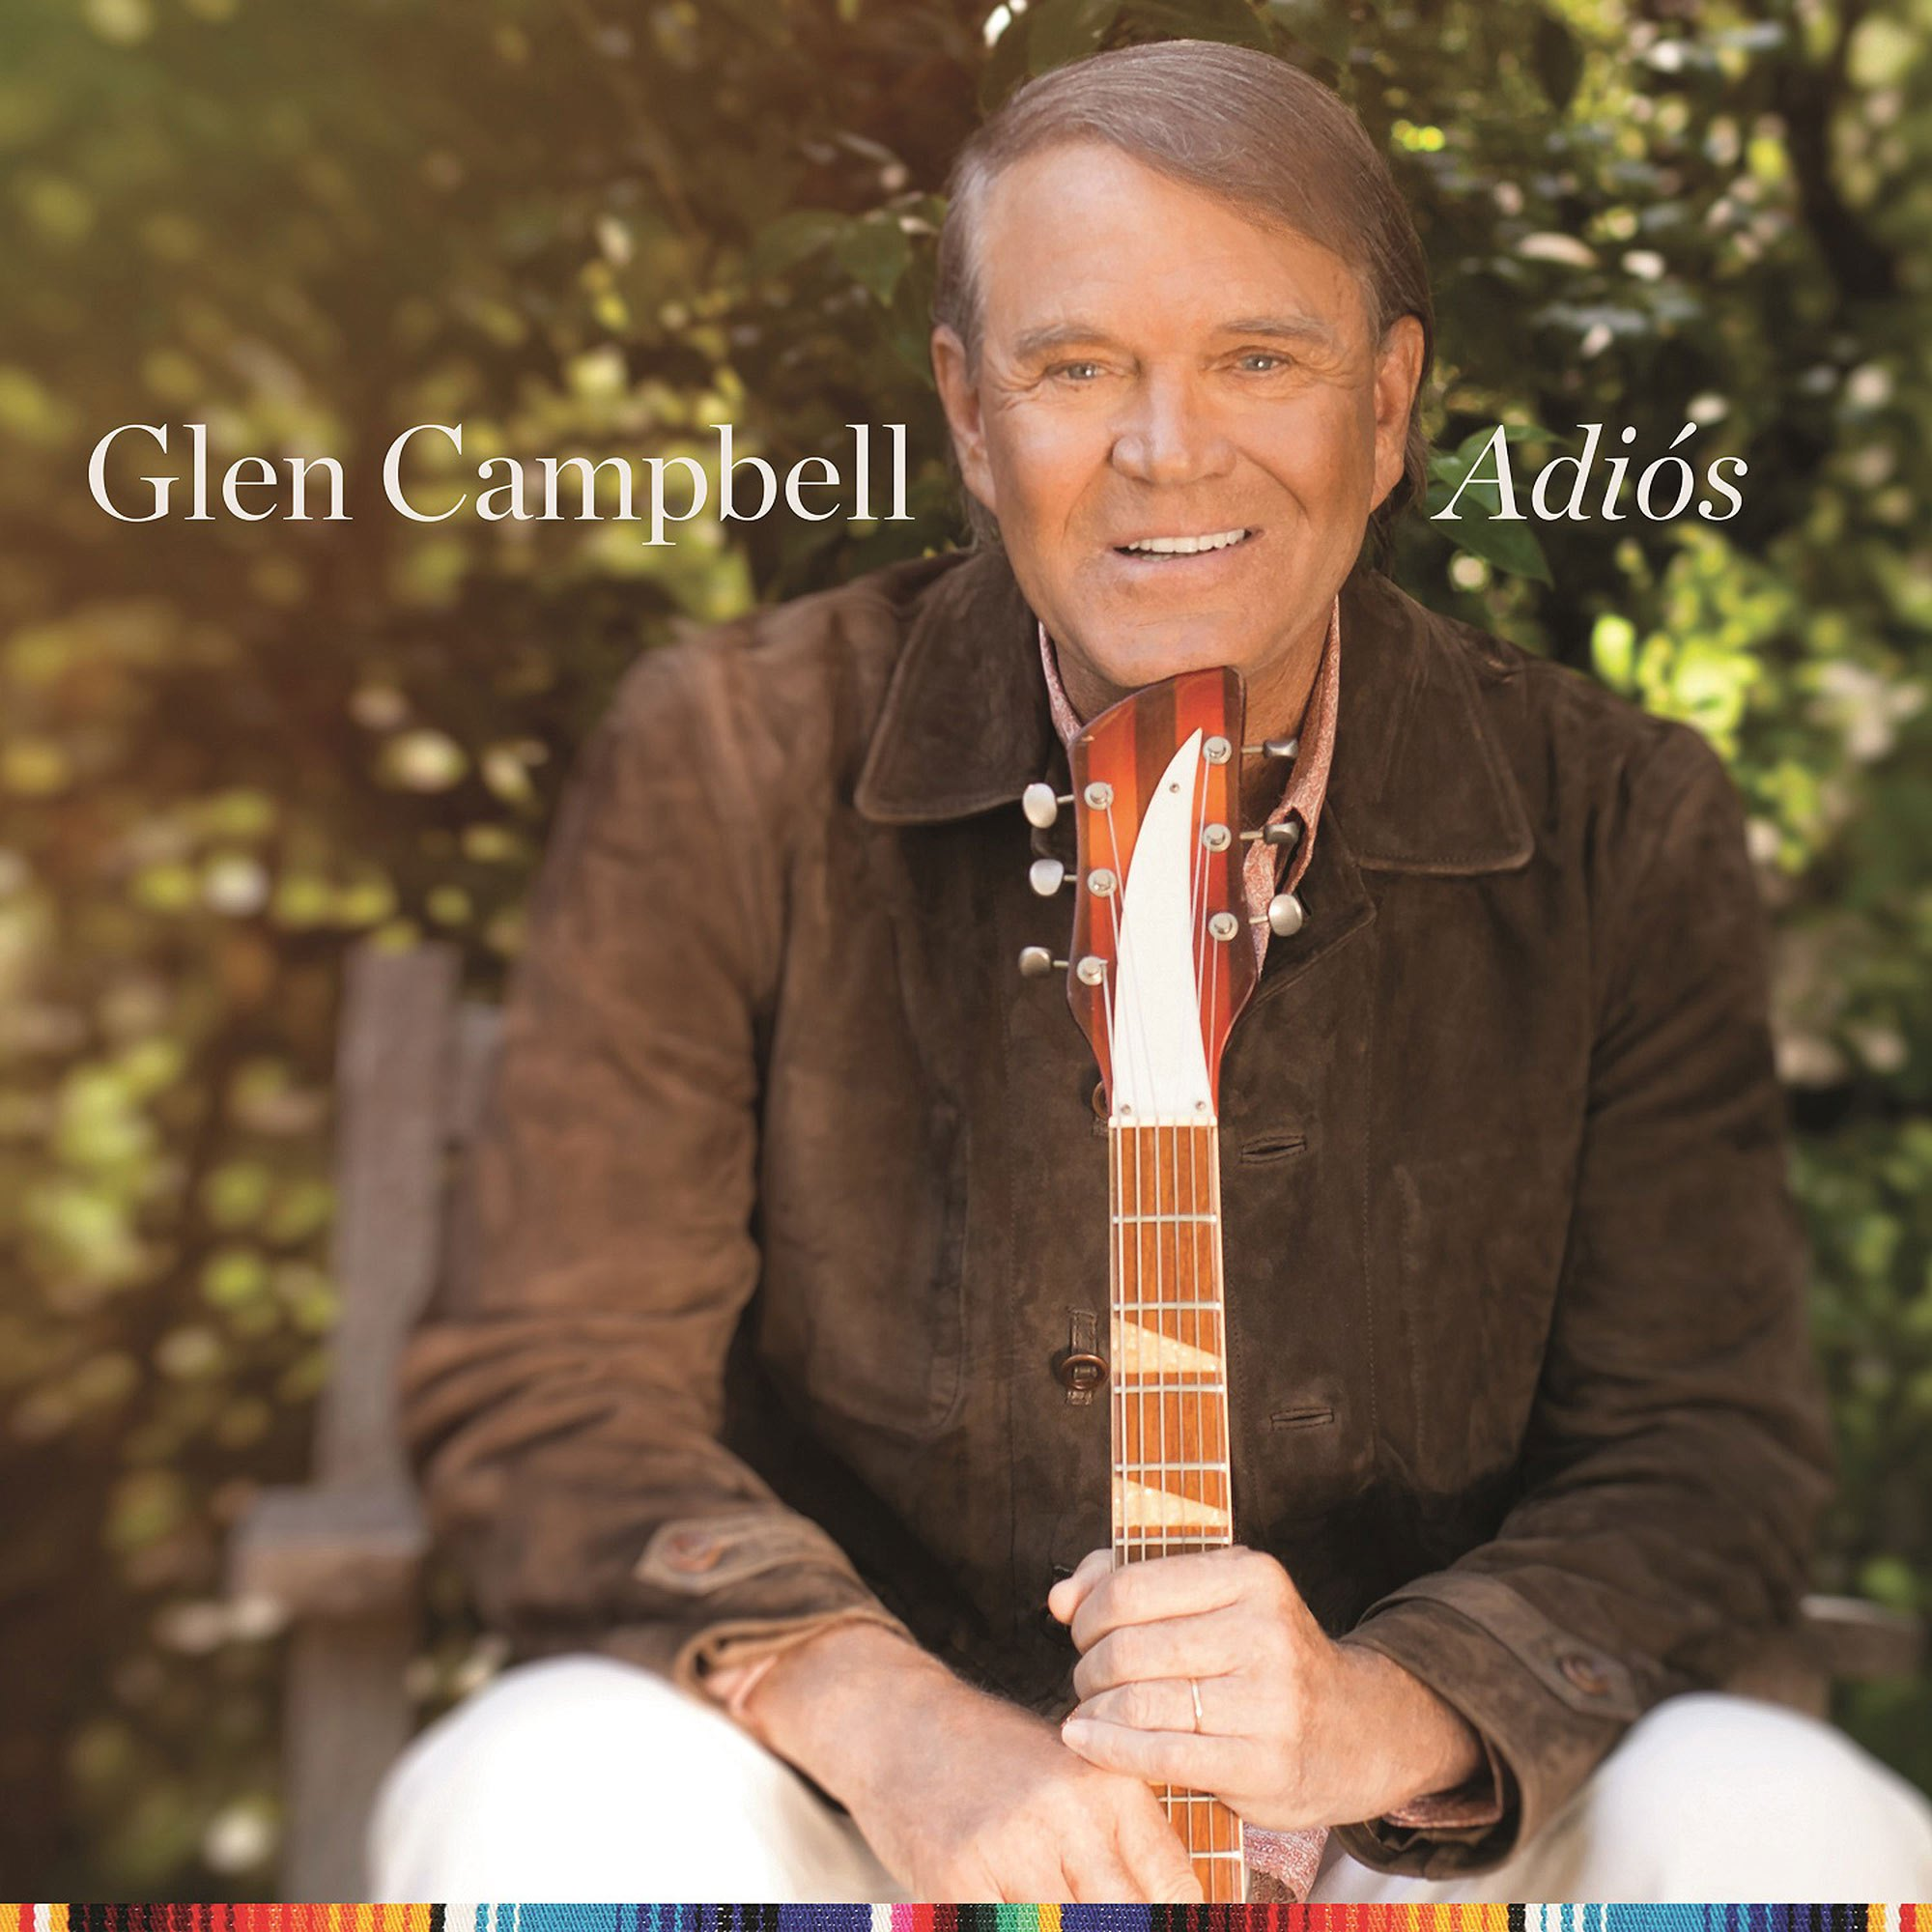 Adios    Glen Campbell    Kevin: Buy It Marcus: Buy It Michael: Buy It    LINKS   Official Site   Facebook   Twitter    LISTEN ON   Spotify   Apple Music